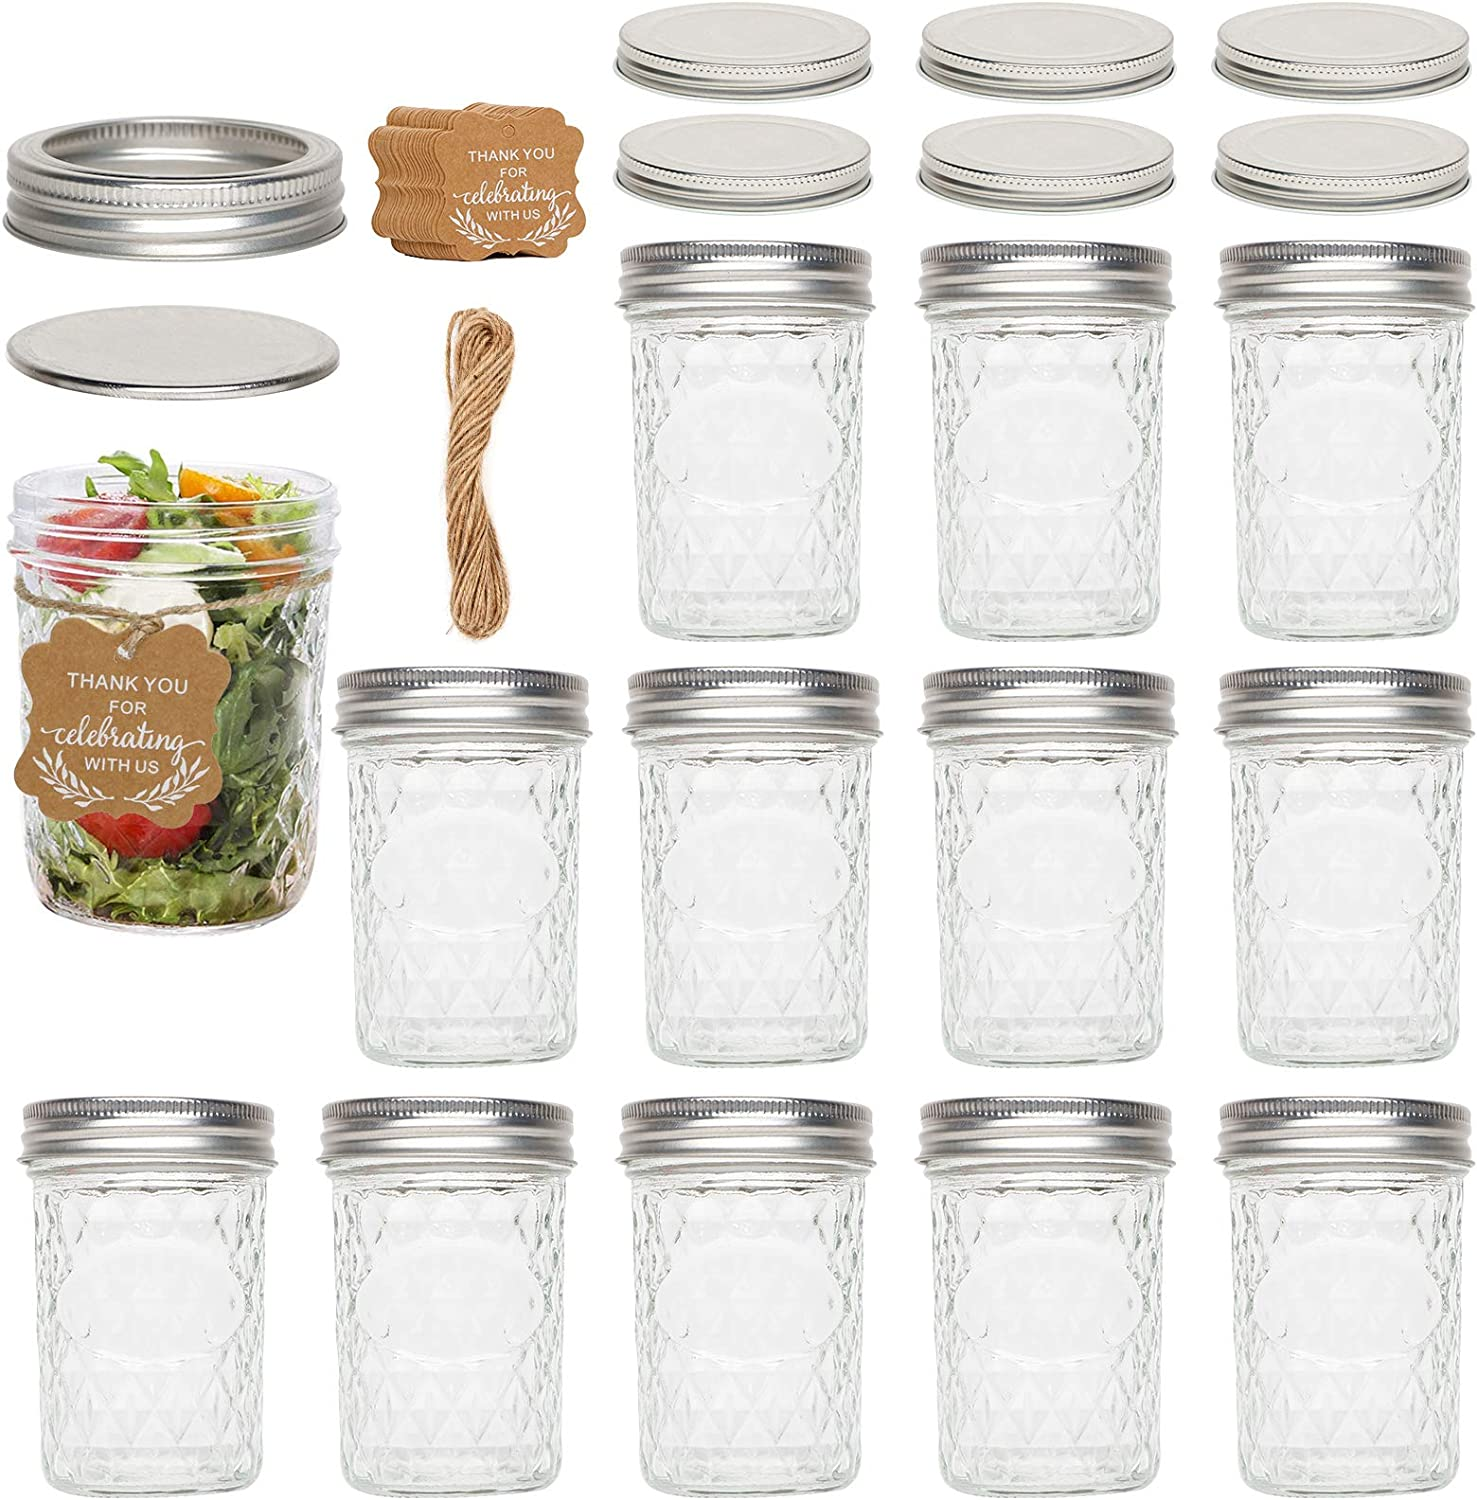 Mason Jars 8 OZ, 12 Pack Canning Jars Jelly Jars With Regular Lids and Bands/Paper Gift Tags & Twine/Extra 6 Lids, Ideal for Jam, Honey, Wedding Favors,Shower Favors, Baby Foods